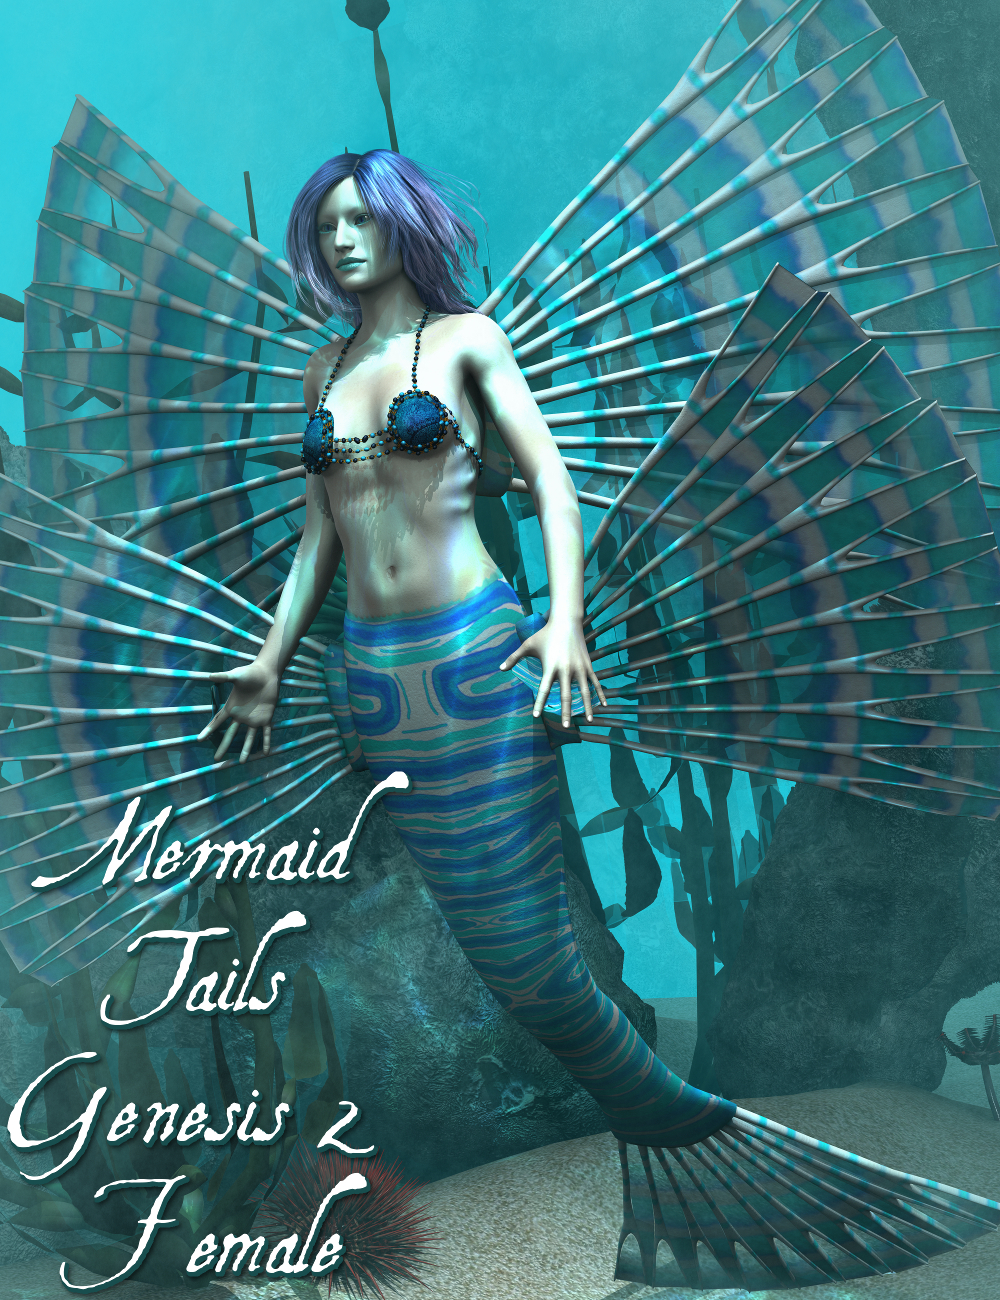 Mermaid Tails Expansion Genesis 2 Female(s) by: SickleyieldFuseling, 3D Models by Daz 3D